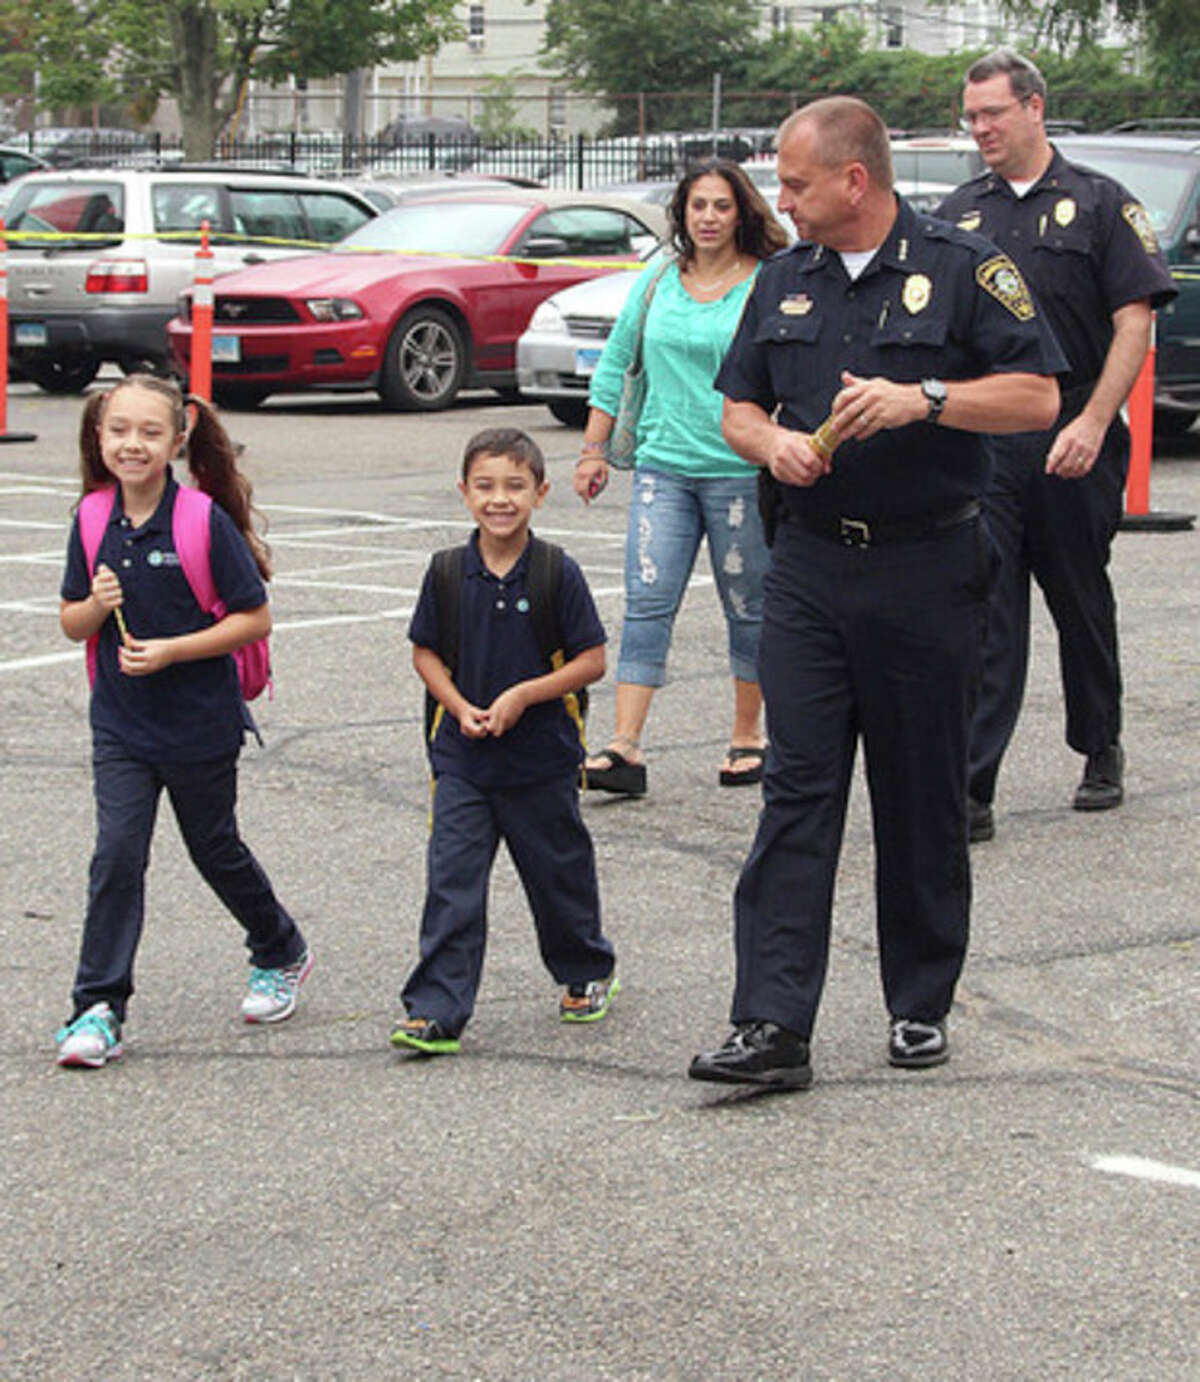 Hour photo / Chris Bosak Isabella and Cristian Cuartas walk into Side by Side Charter School with Norwalk Police Chief Thomas Kulhawik and Deputy Chief David Wrinn. The children's parents won an auction whereby the prize was a ride to school for the parents by the police.